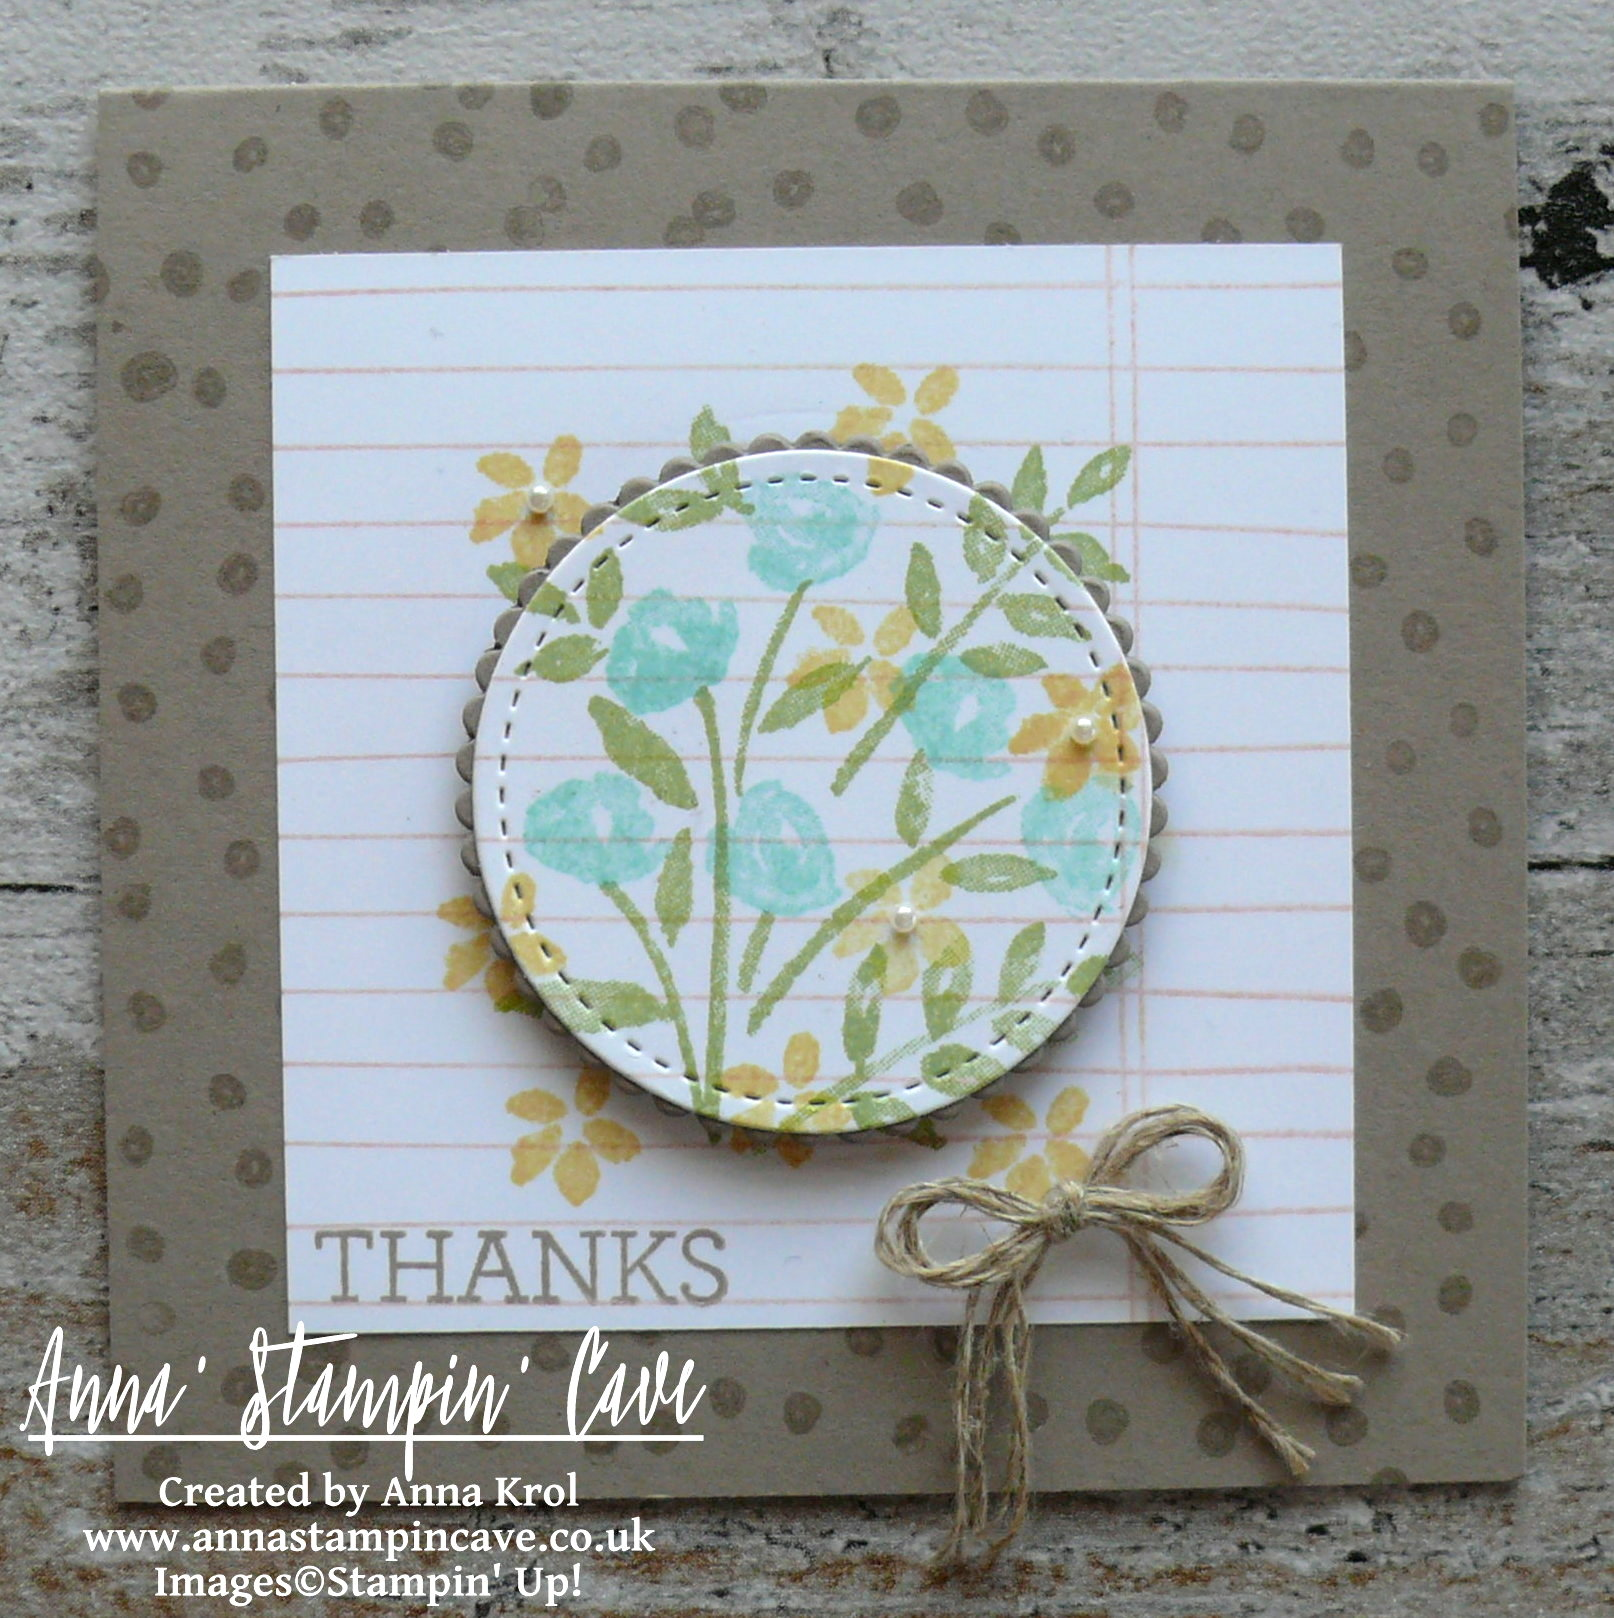 Anna' Stampin' Cave - Stampin' Up! Number Of Years Stamp Set - Hello Spring Tip Top Taupe Notecard